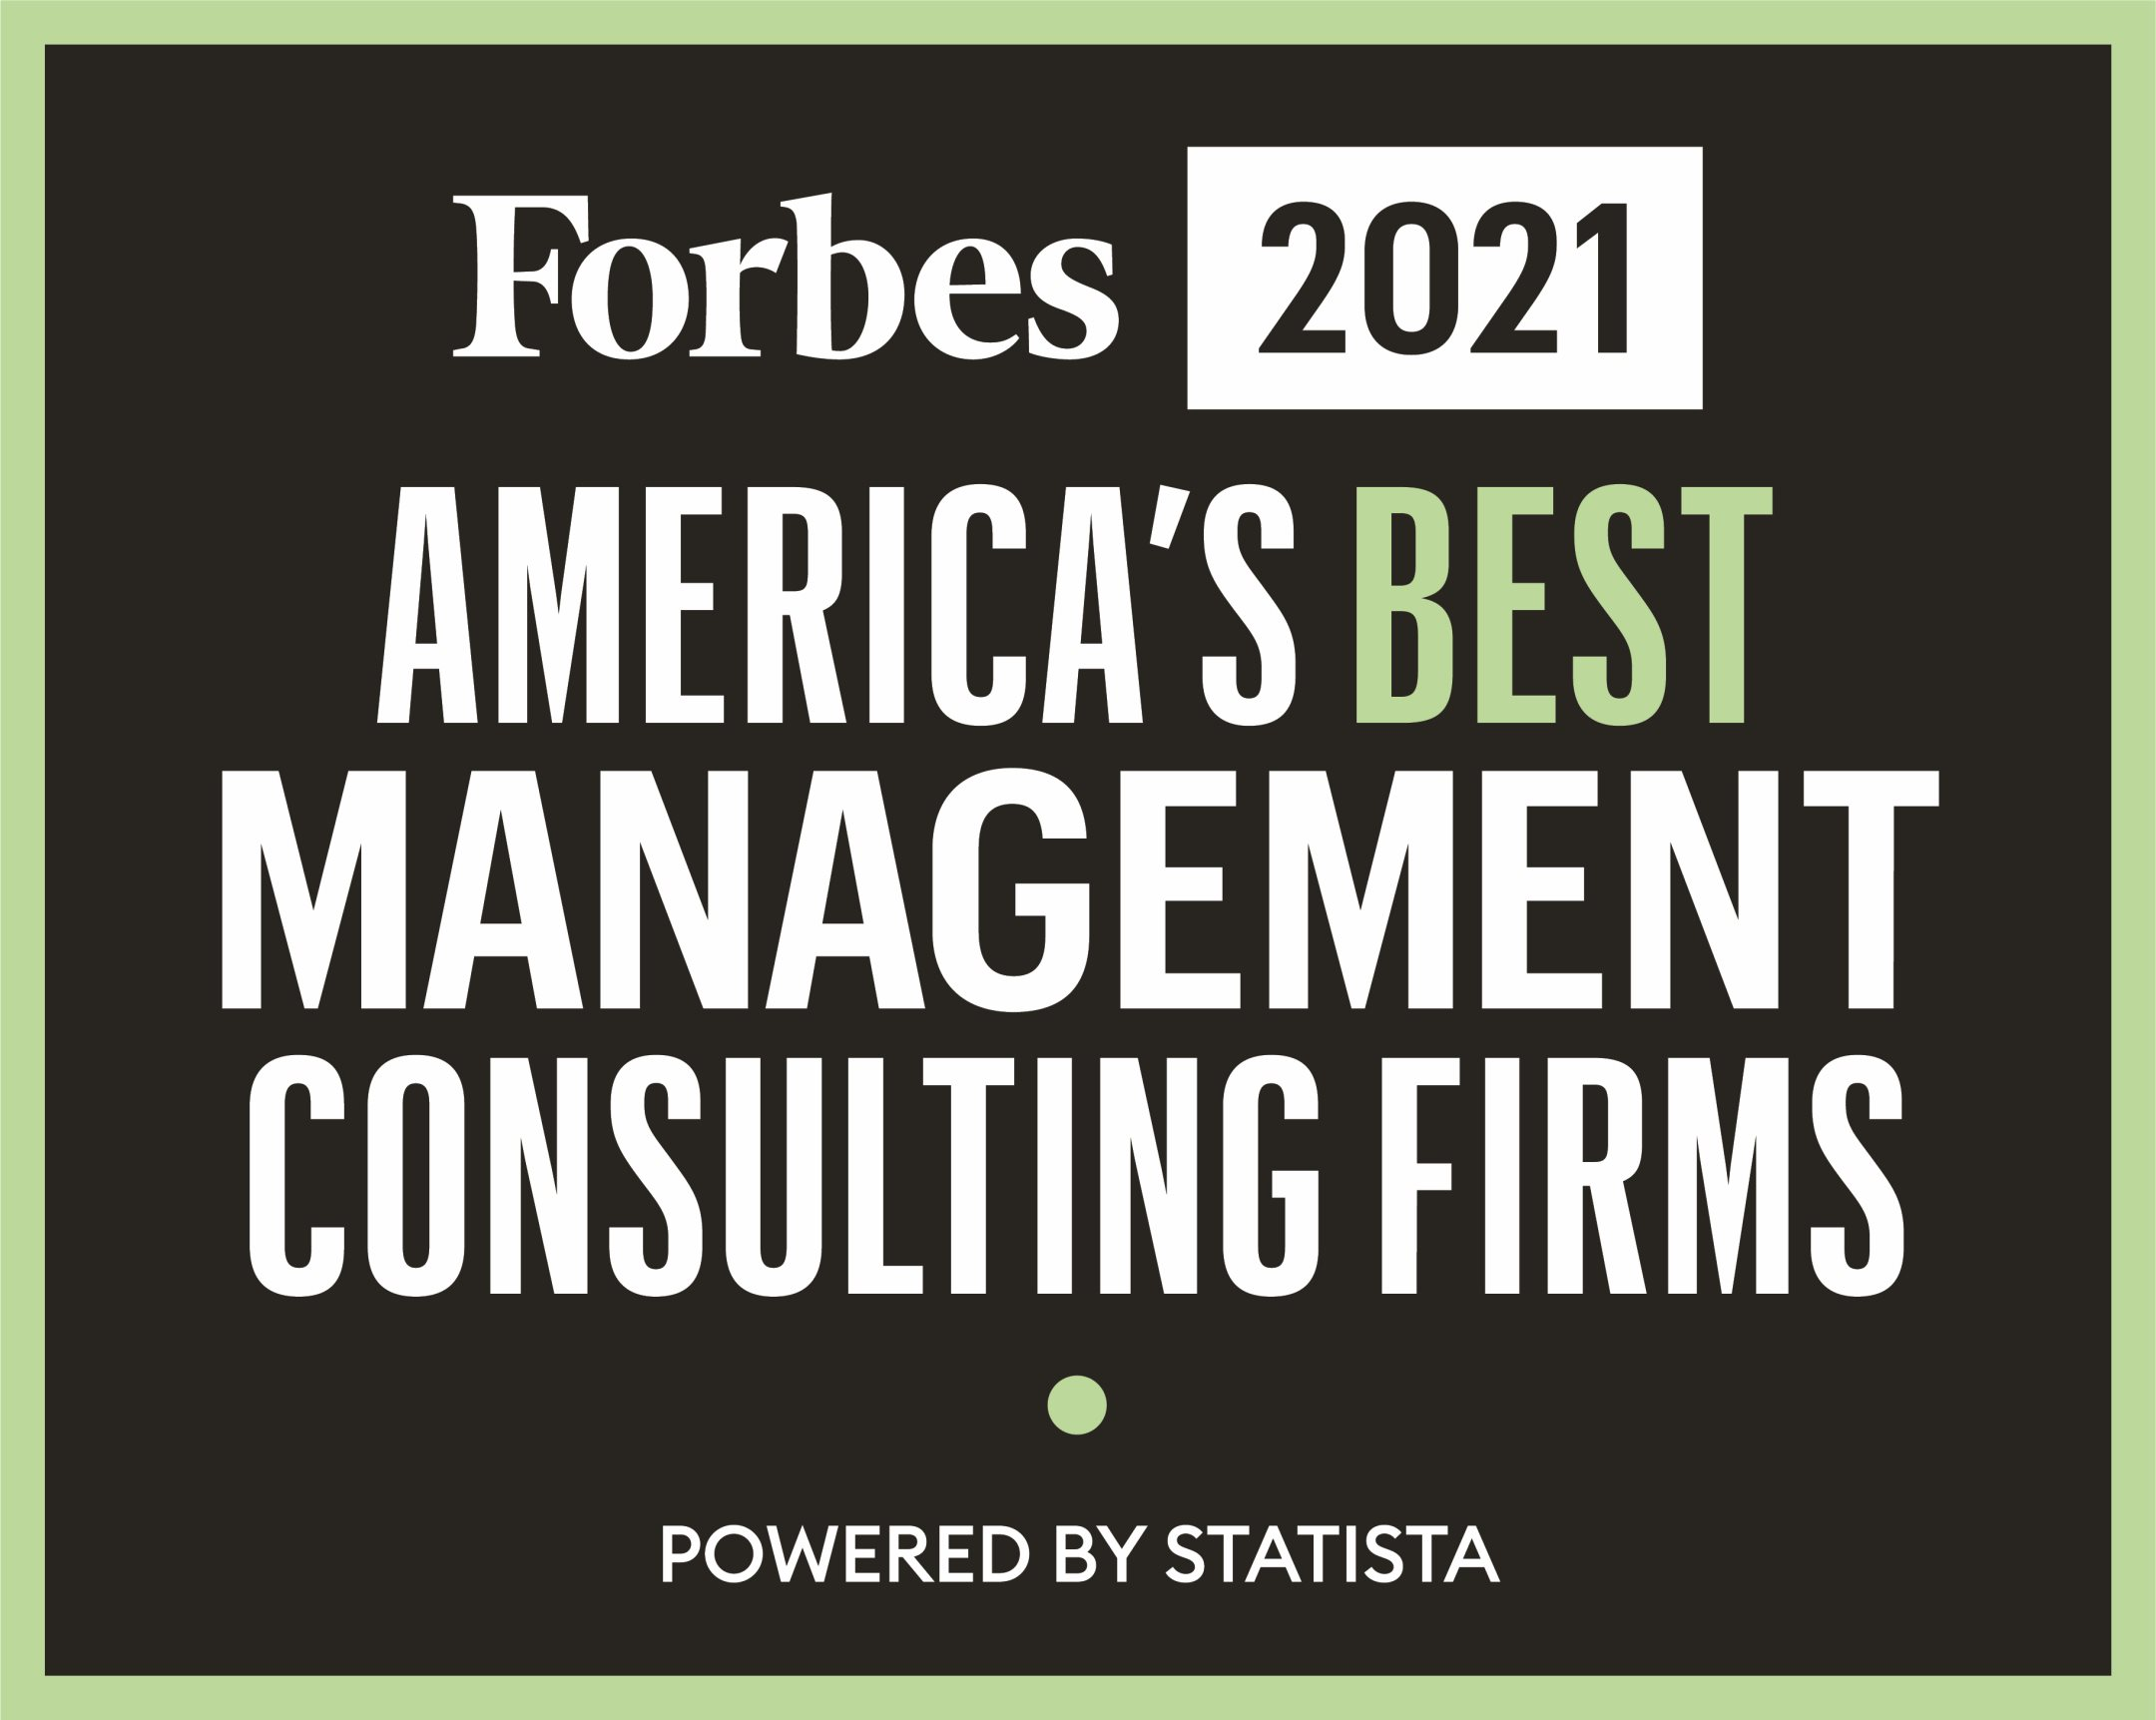 Ricardo among 'America's Best Management Consulting Firms 2021' for sixth year in a row